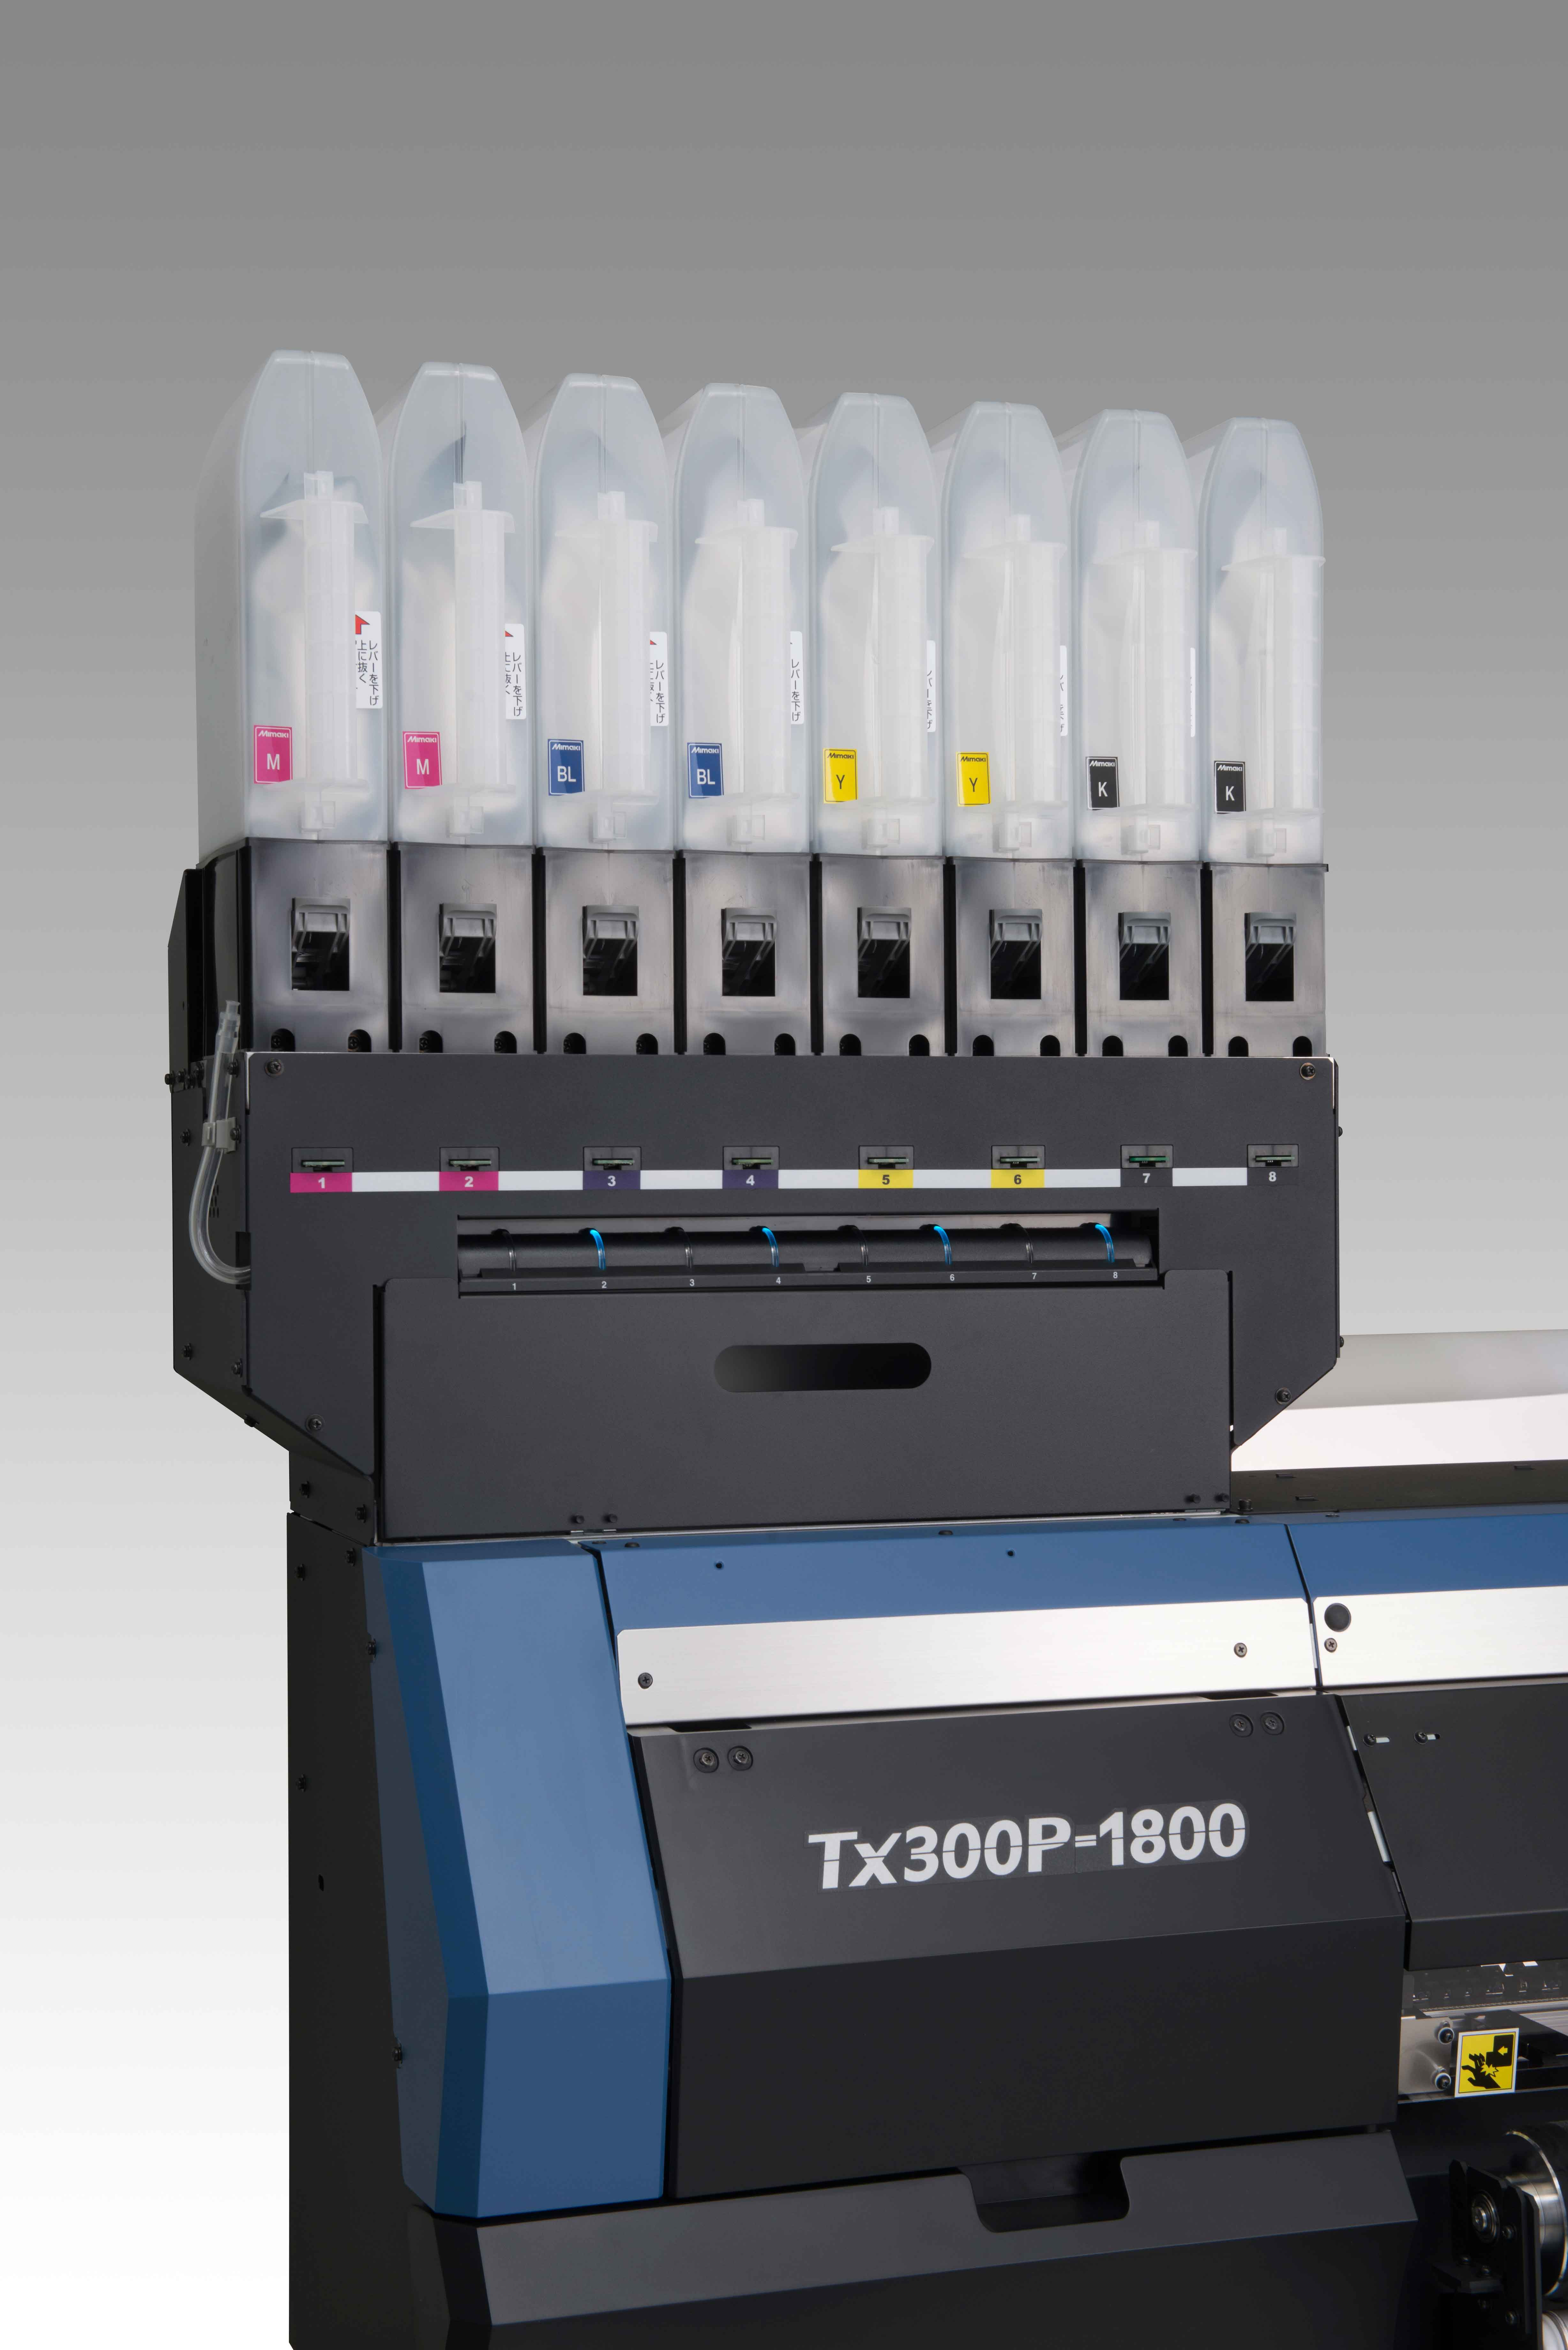 Color printing uw - Product Images Of The Tx300p 1800